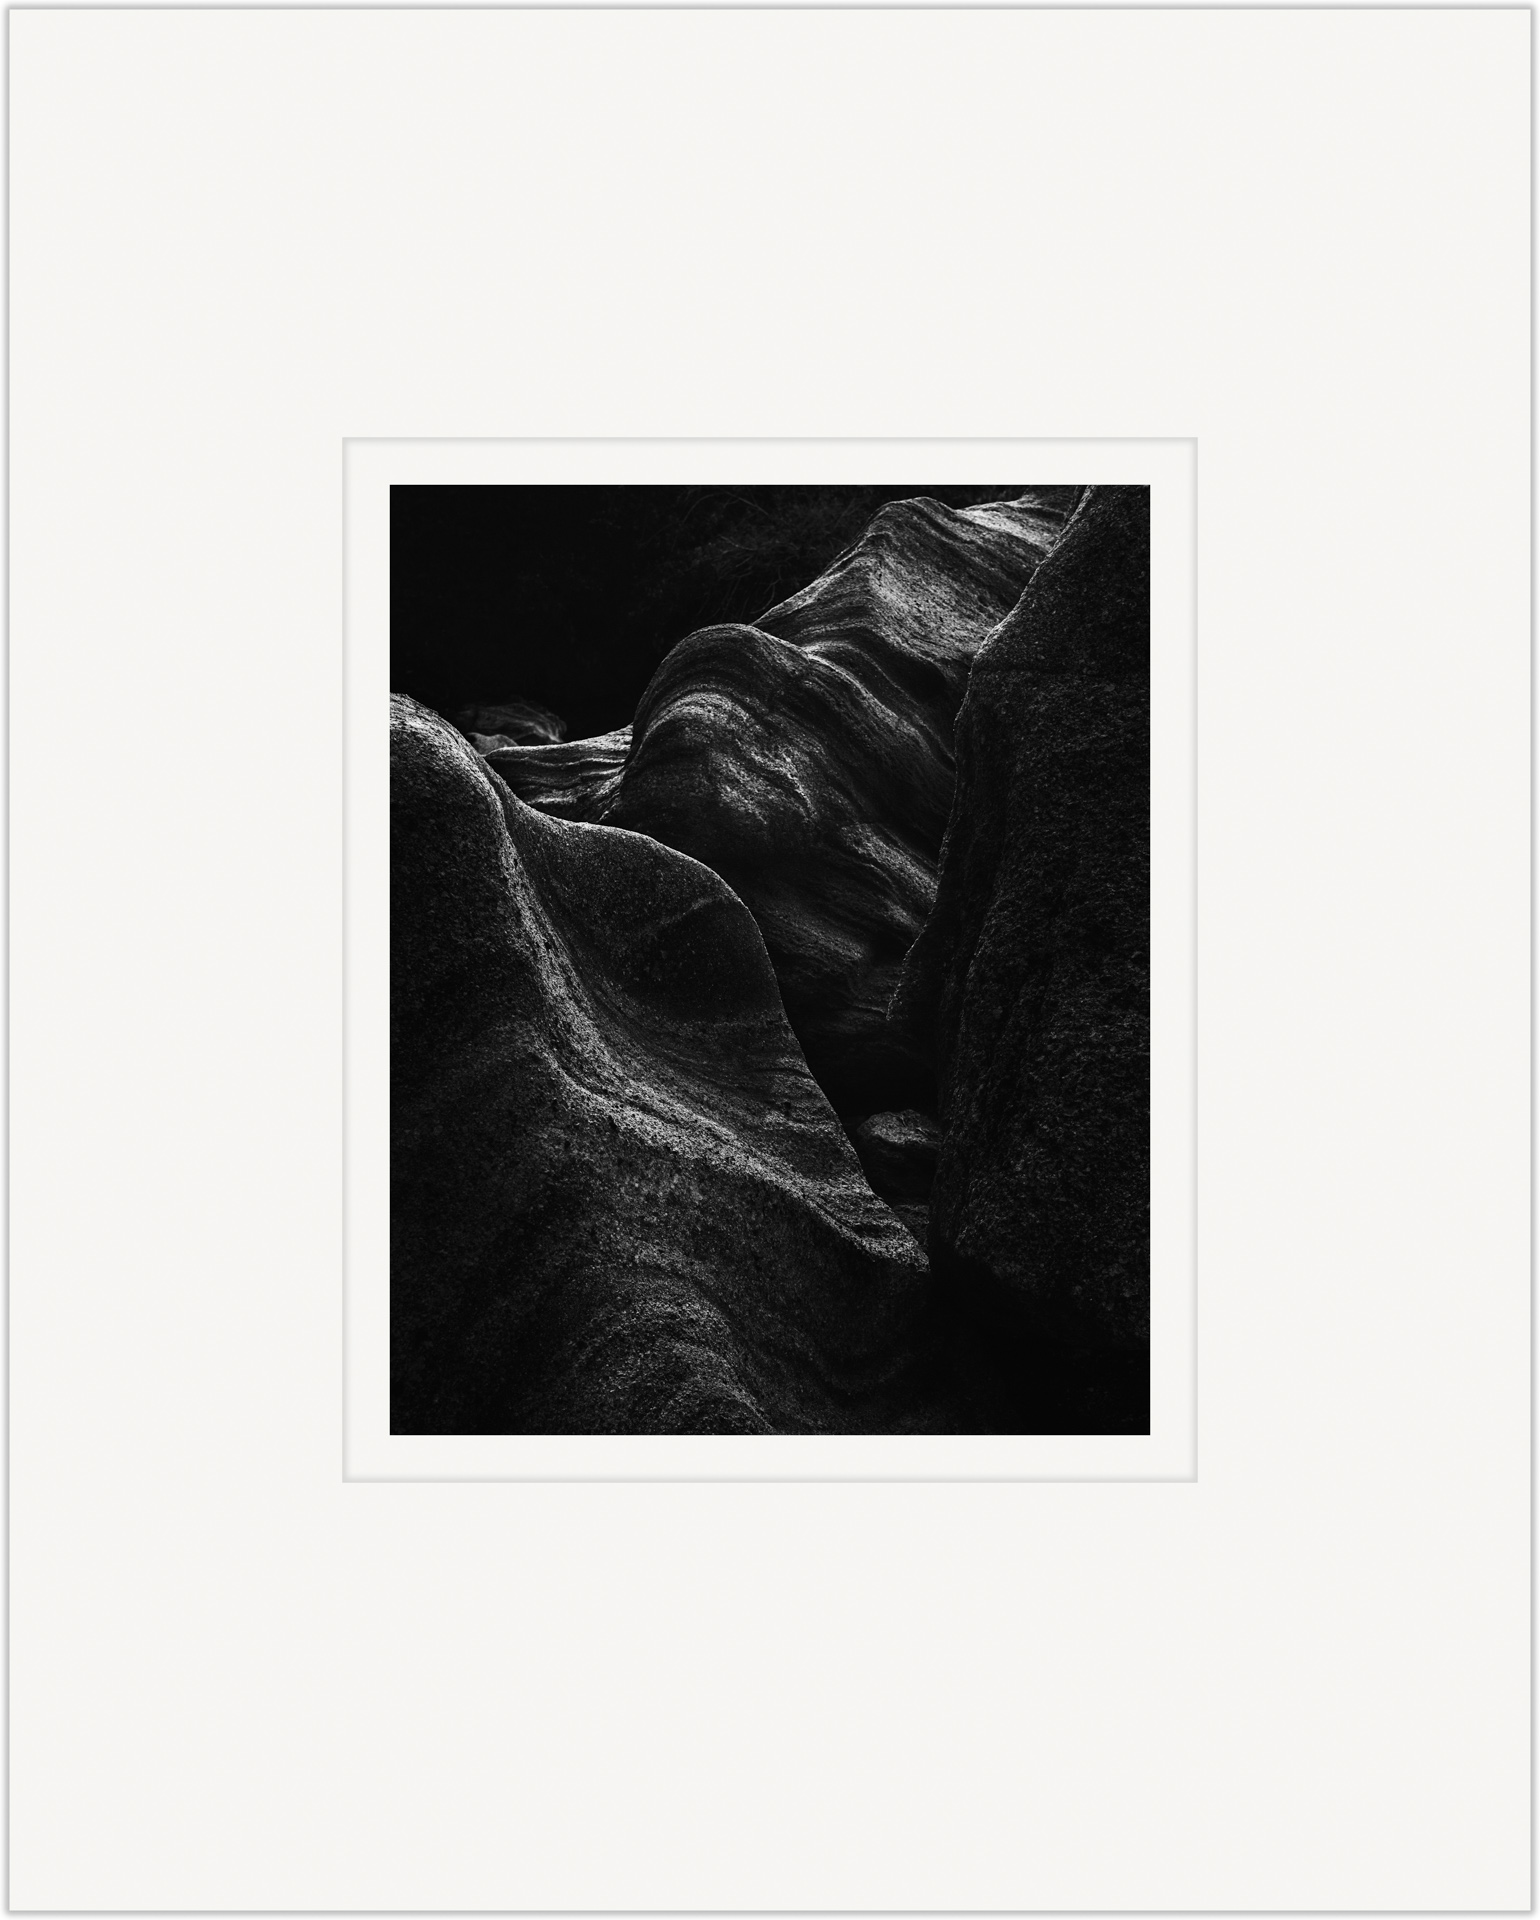 Untitled (Layered Rocks)   20cm x 25cm Photo Paper Limited Edition of 99   IDR 799,000